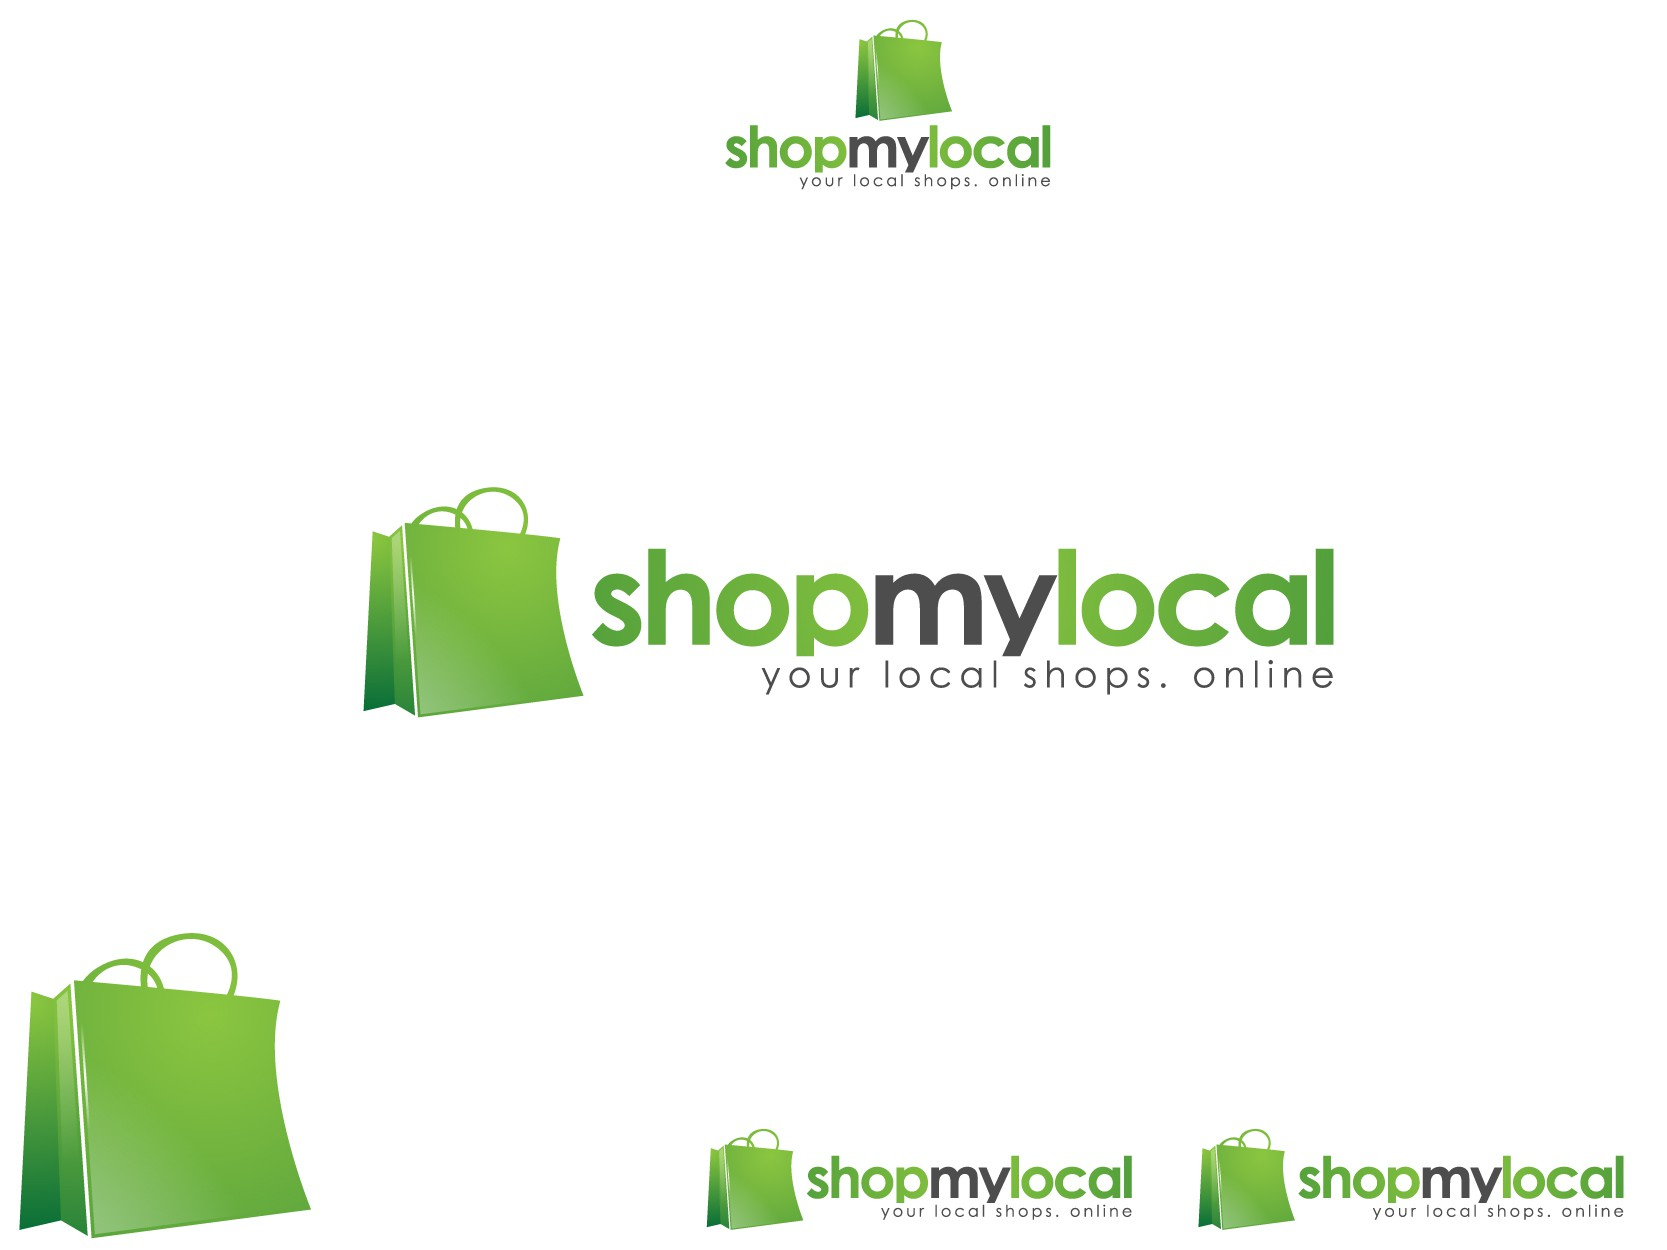 shopmylocal needs a new logo